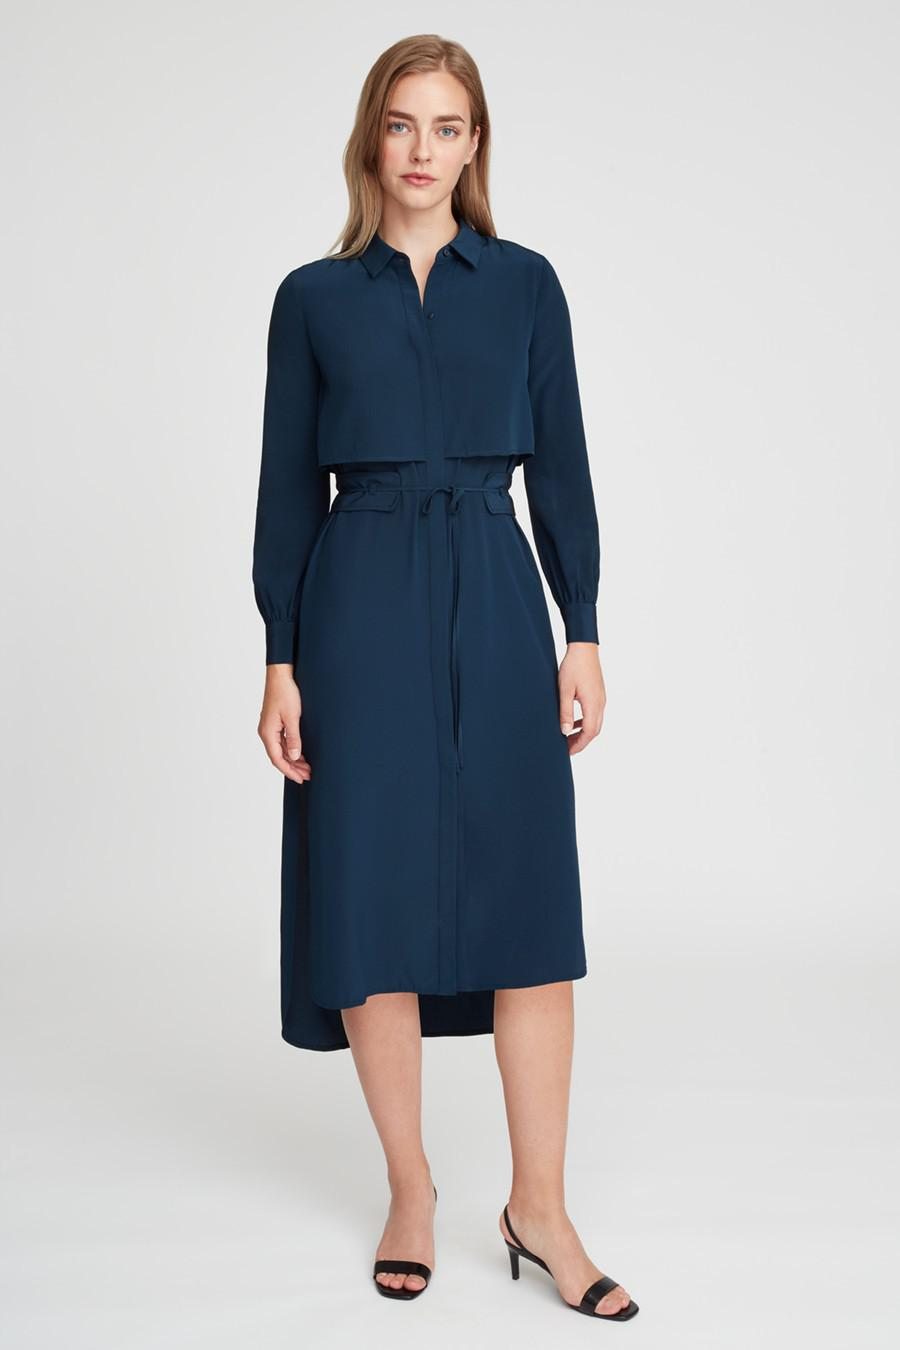 Women's Silk High-Low Shirt Dress in Navy   Size: Large   3 Ply Crepe Silk by Cuyana 2